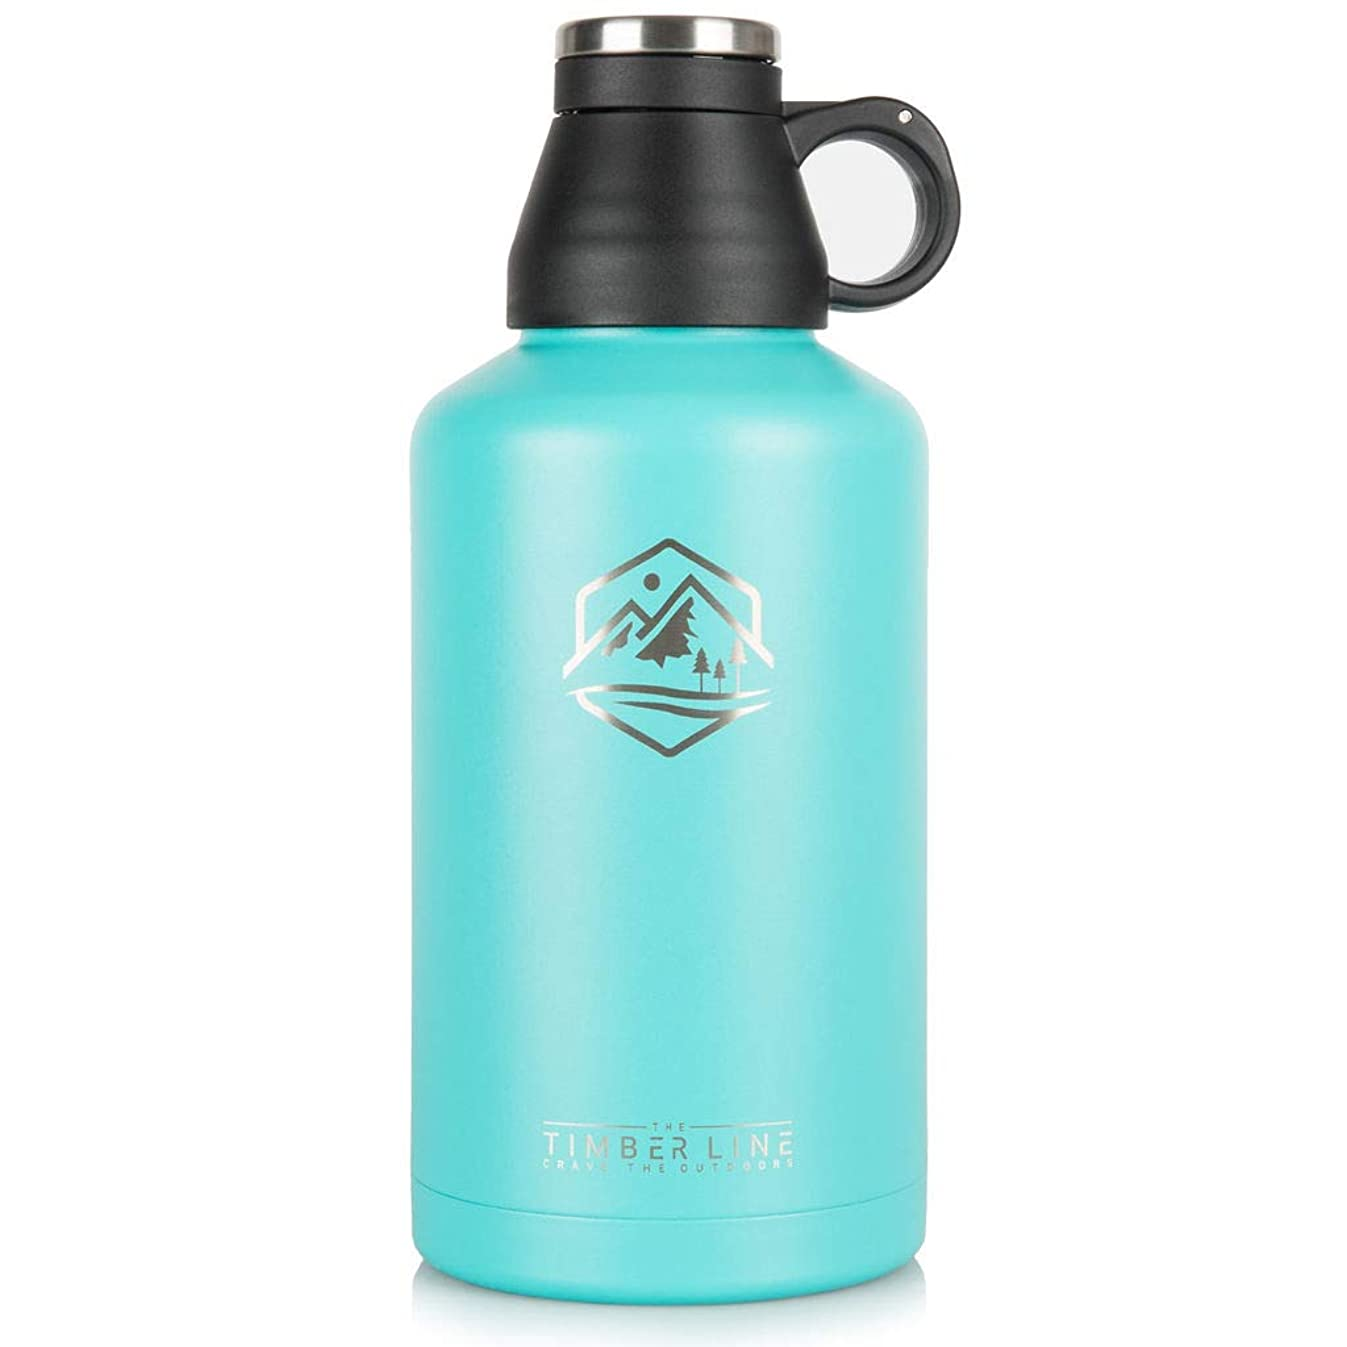 The Timber Line 64 oz Insulated Water Bottle and Beer Growler, Vacuum Insulated Stainless Steel, BPA Free, Double Walled Half Gallon Water Jug, Wide Mouth, Leak Proof Cap, Keeps Drinks HOT and Cold